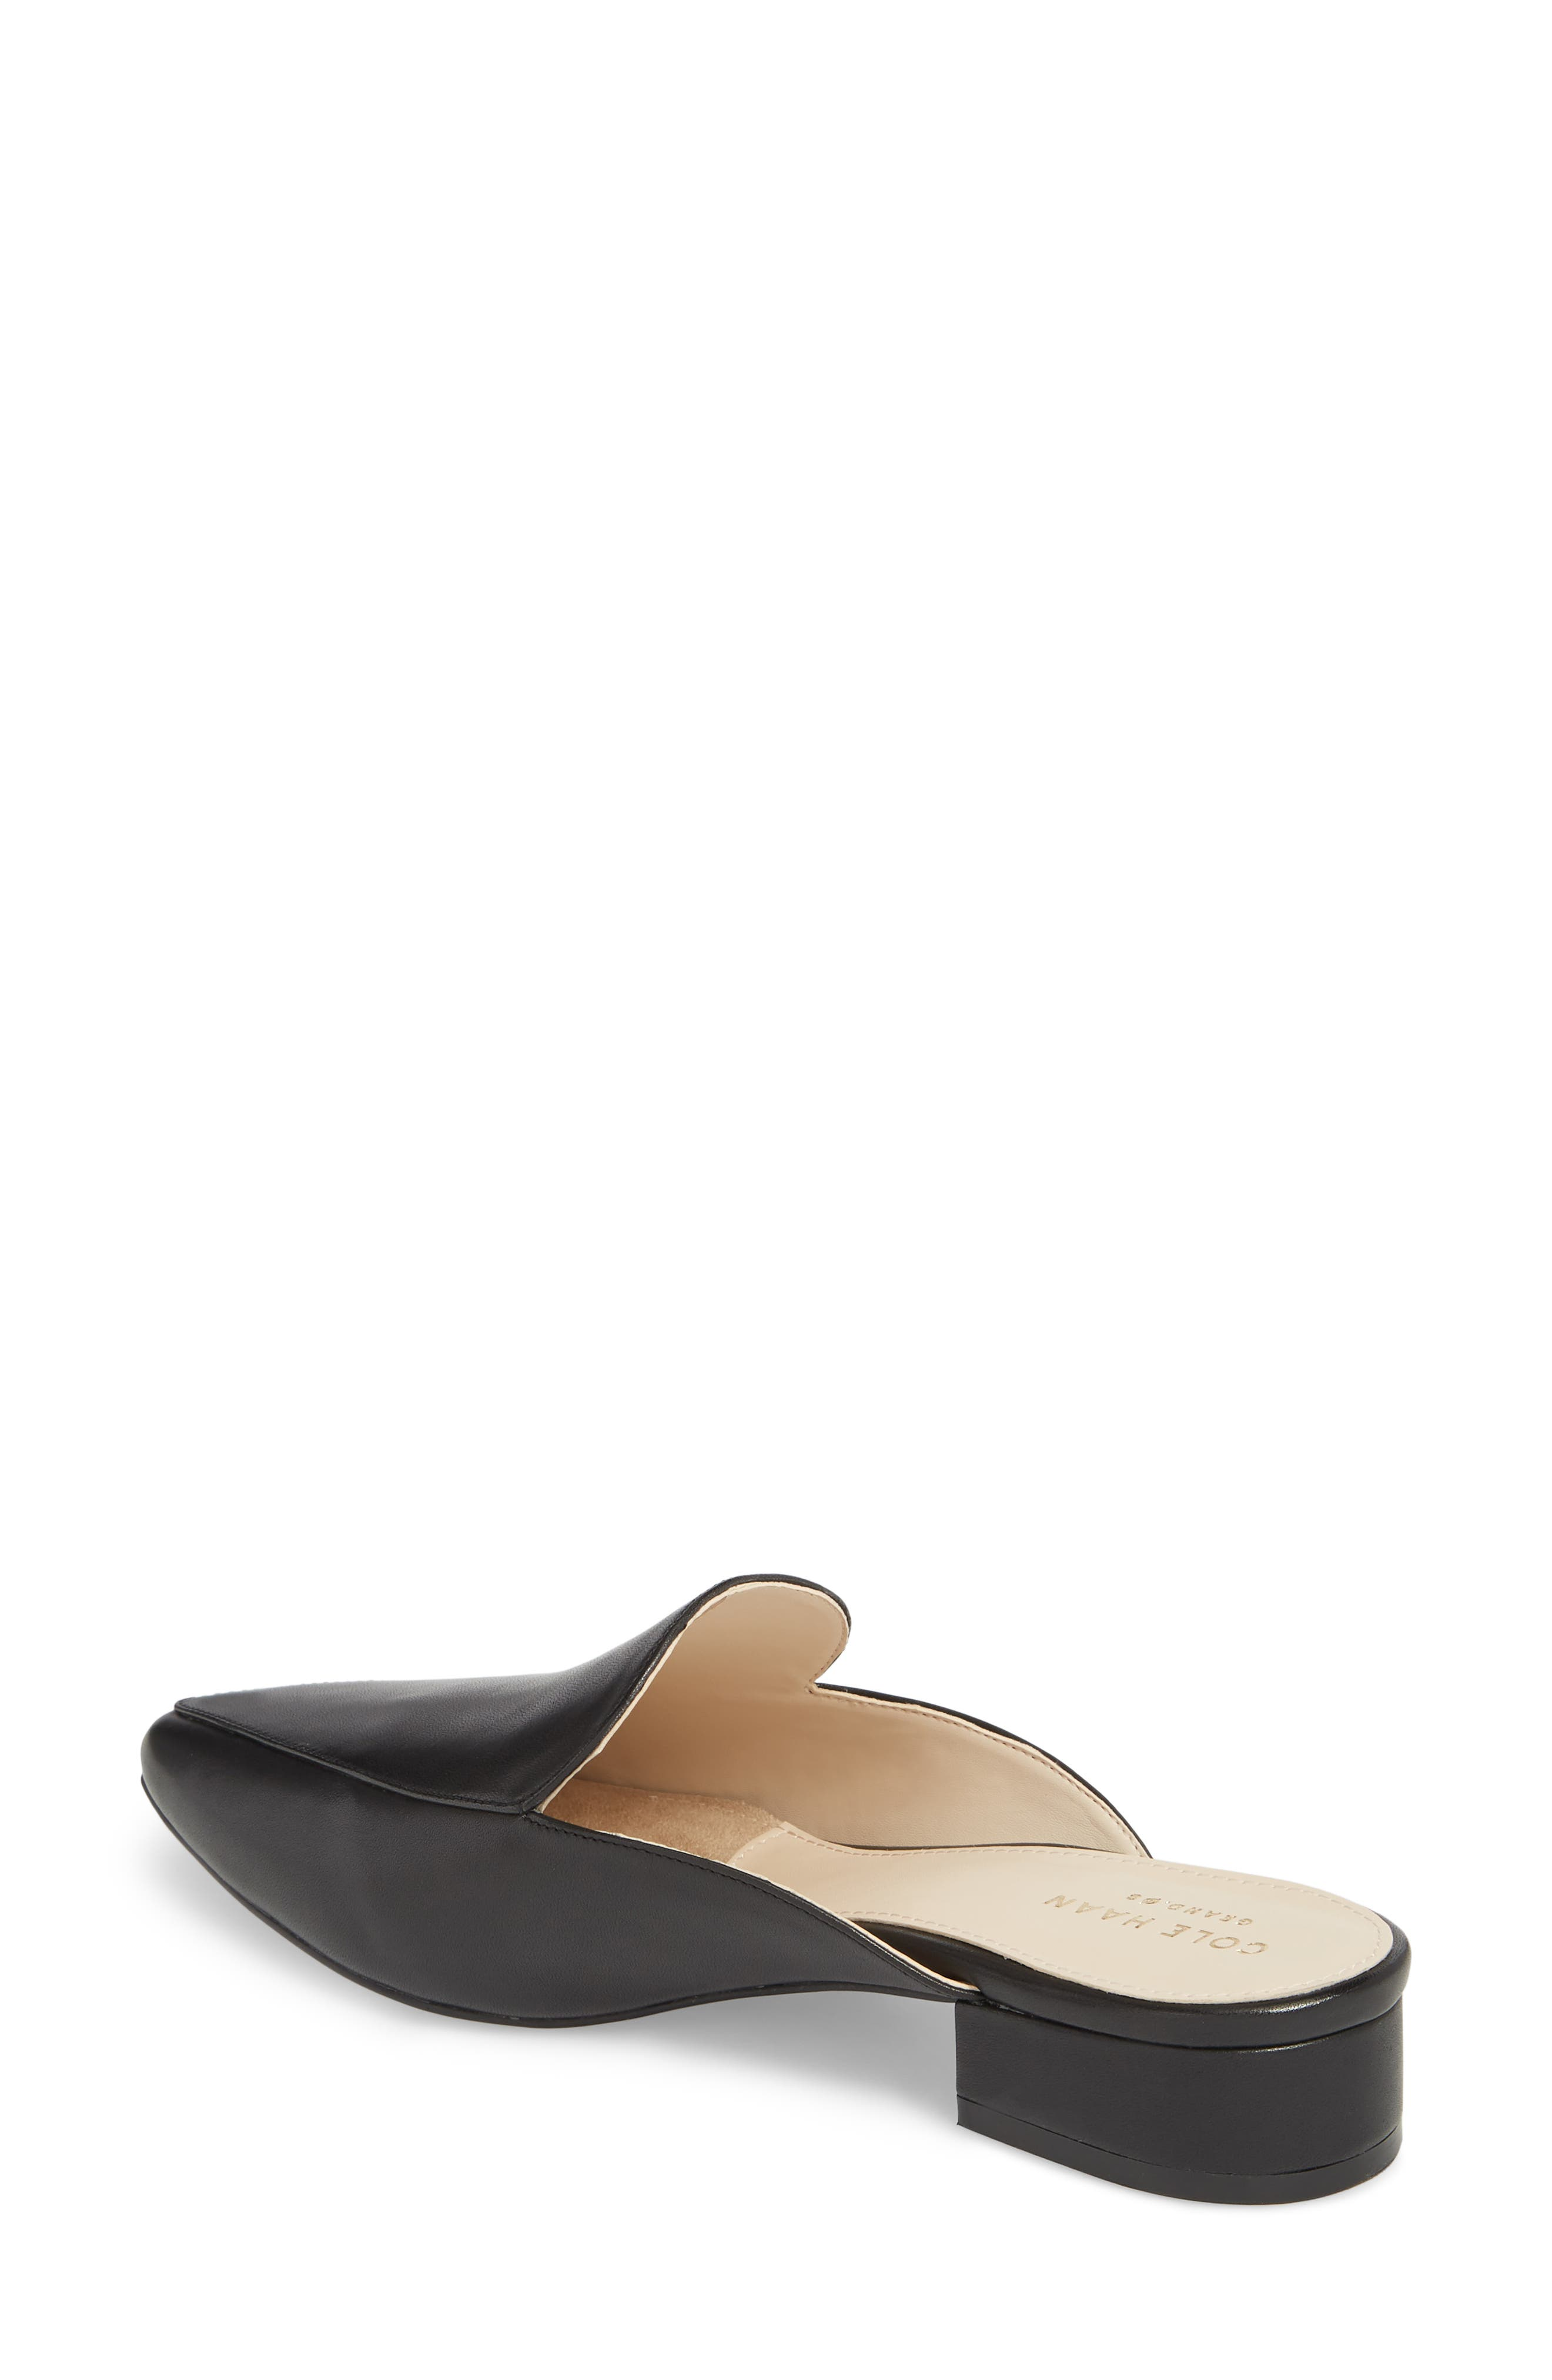 Piper Loafer Mule,                             Alternate thumbnail 2, color,                             Black Leather